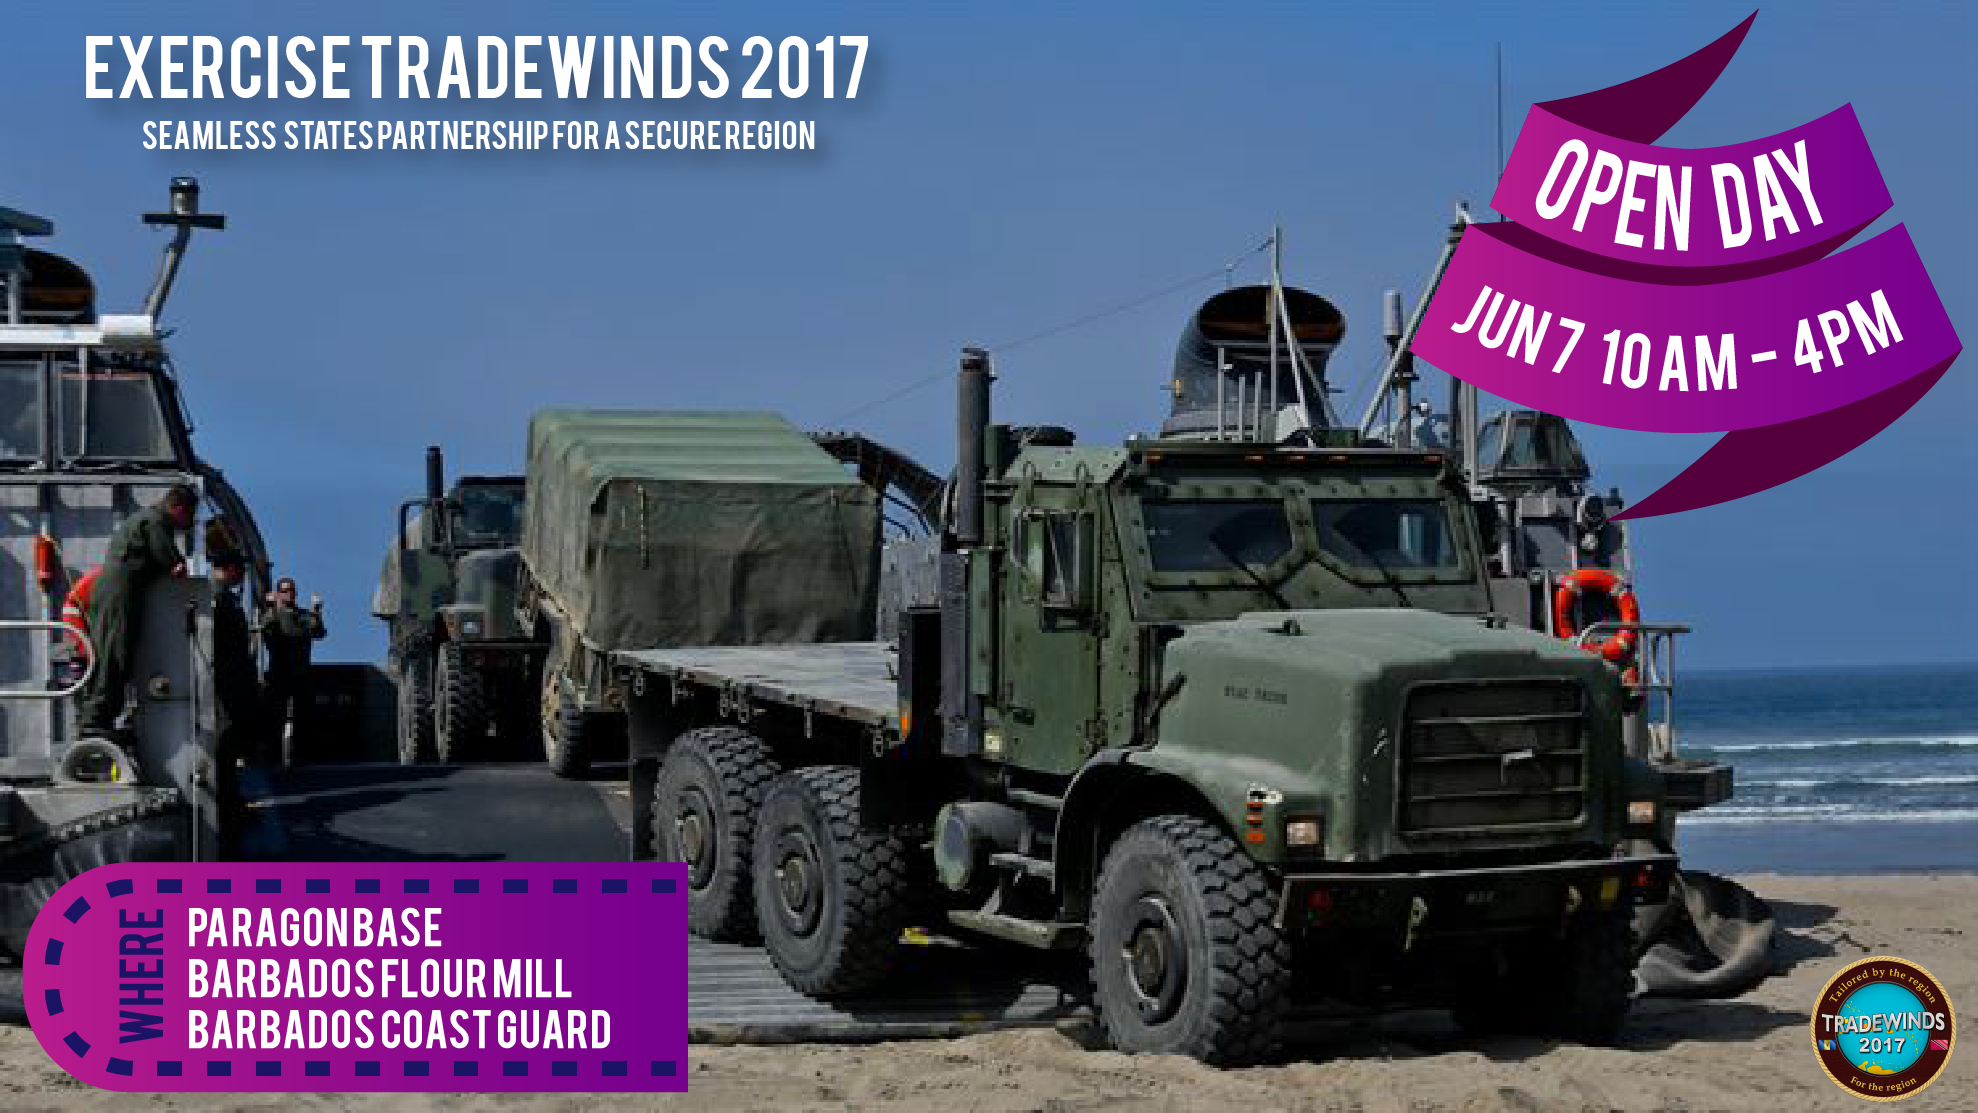 Foto: Facebook/ Exercise Tradewinds 2017